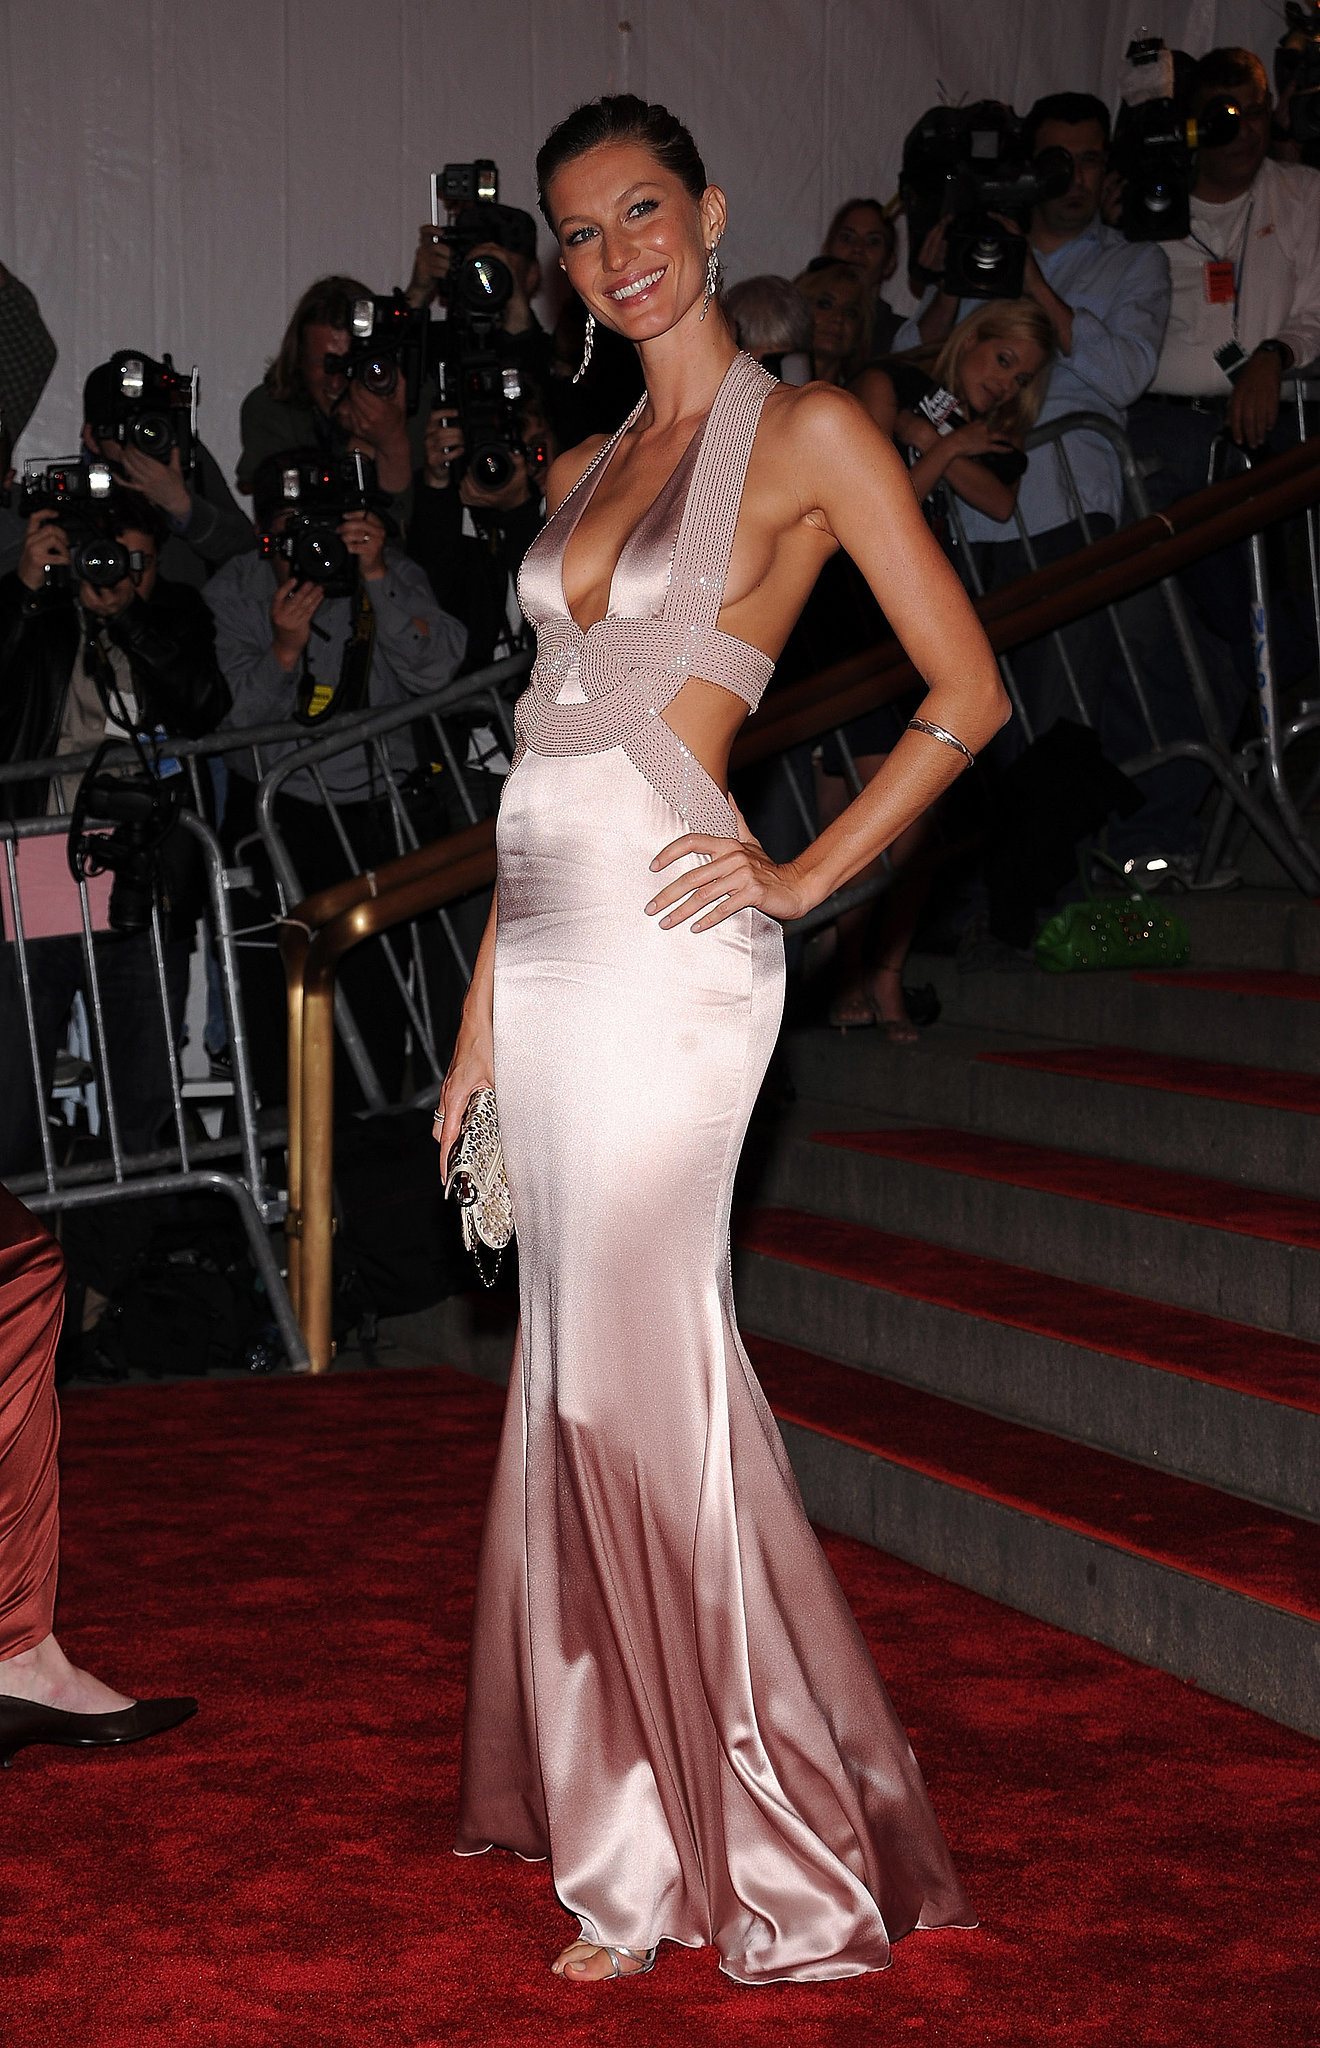 Gisele Bündchen in Versace at the Met Gala